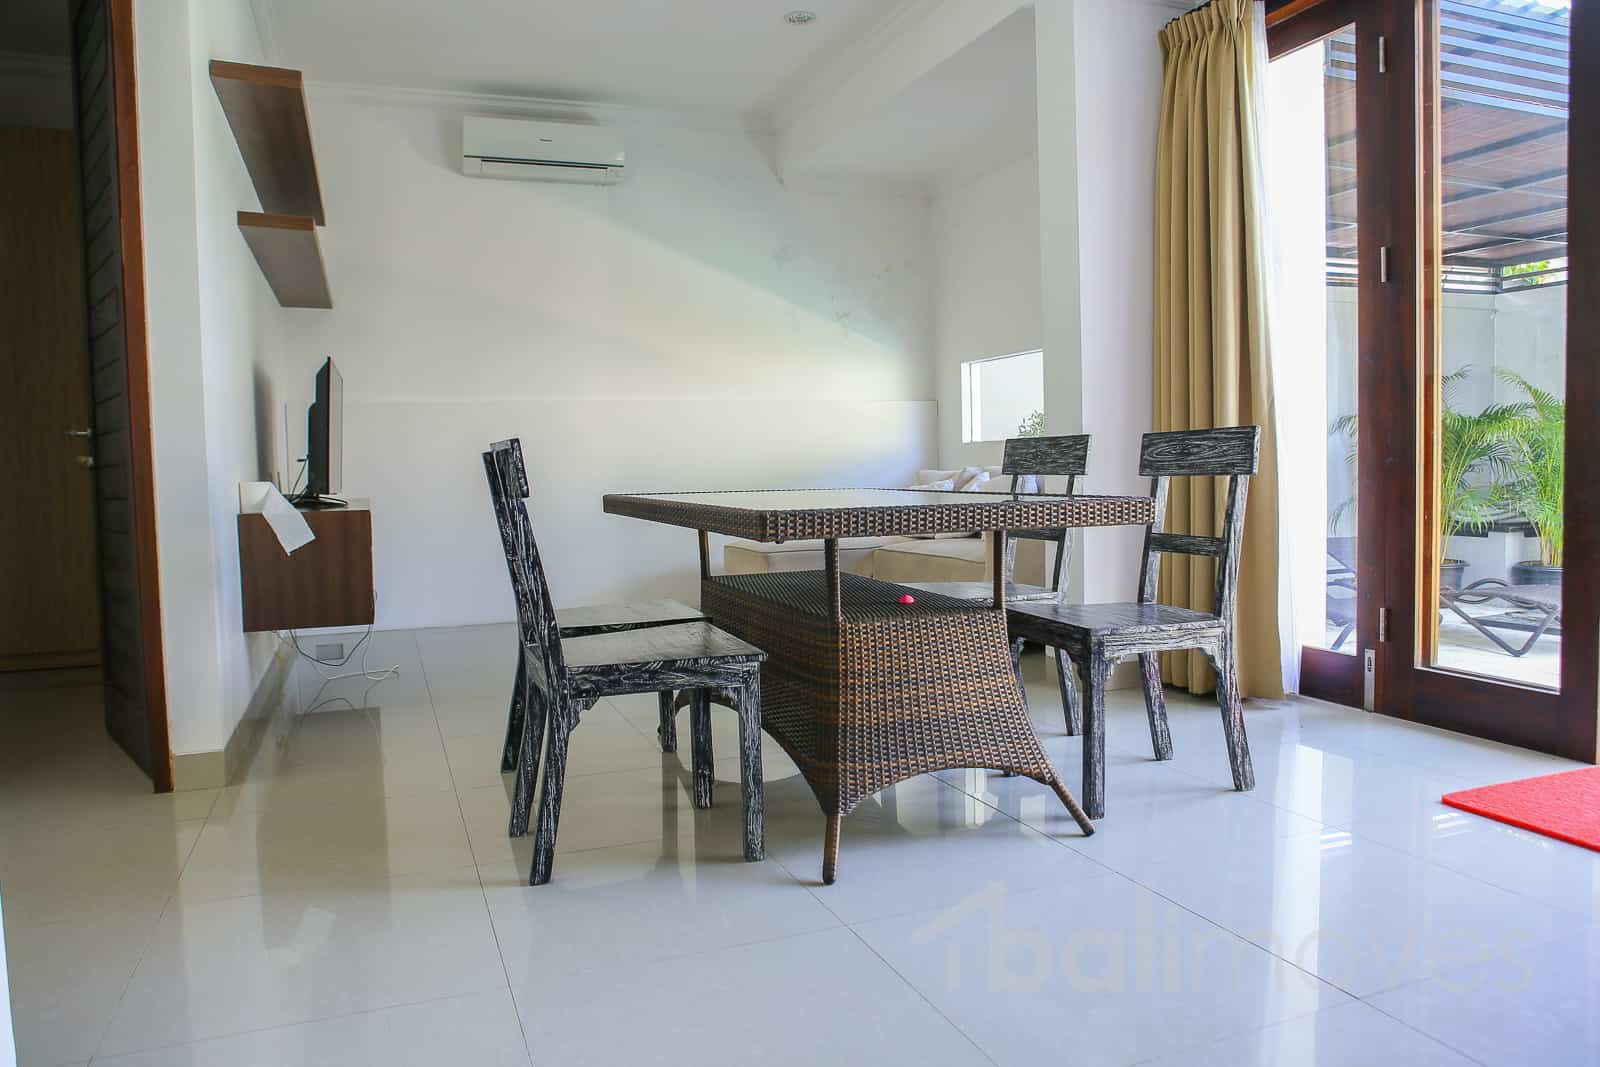 three bedrooms villa for rent in sanur beachside sanur 39 s property